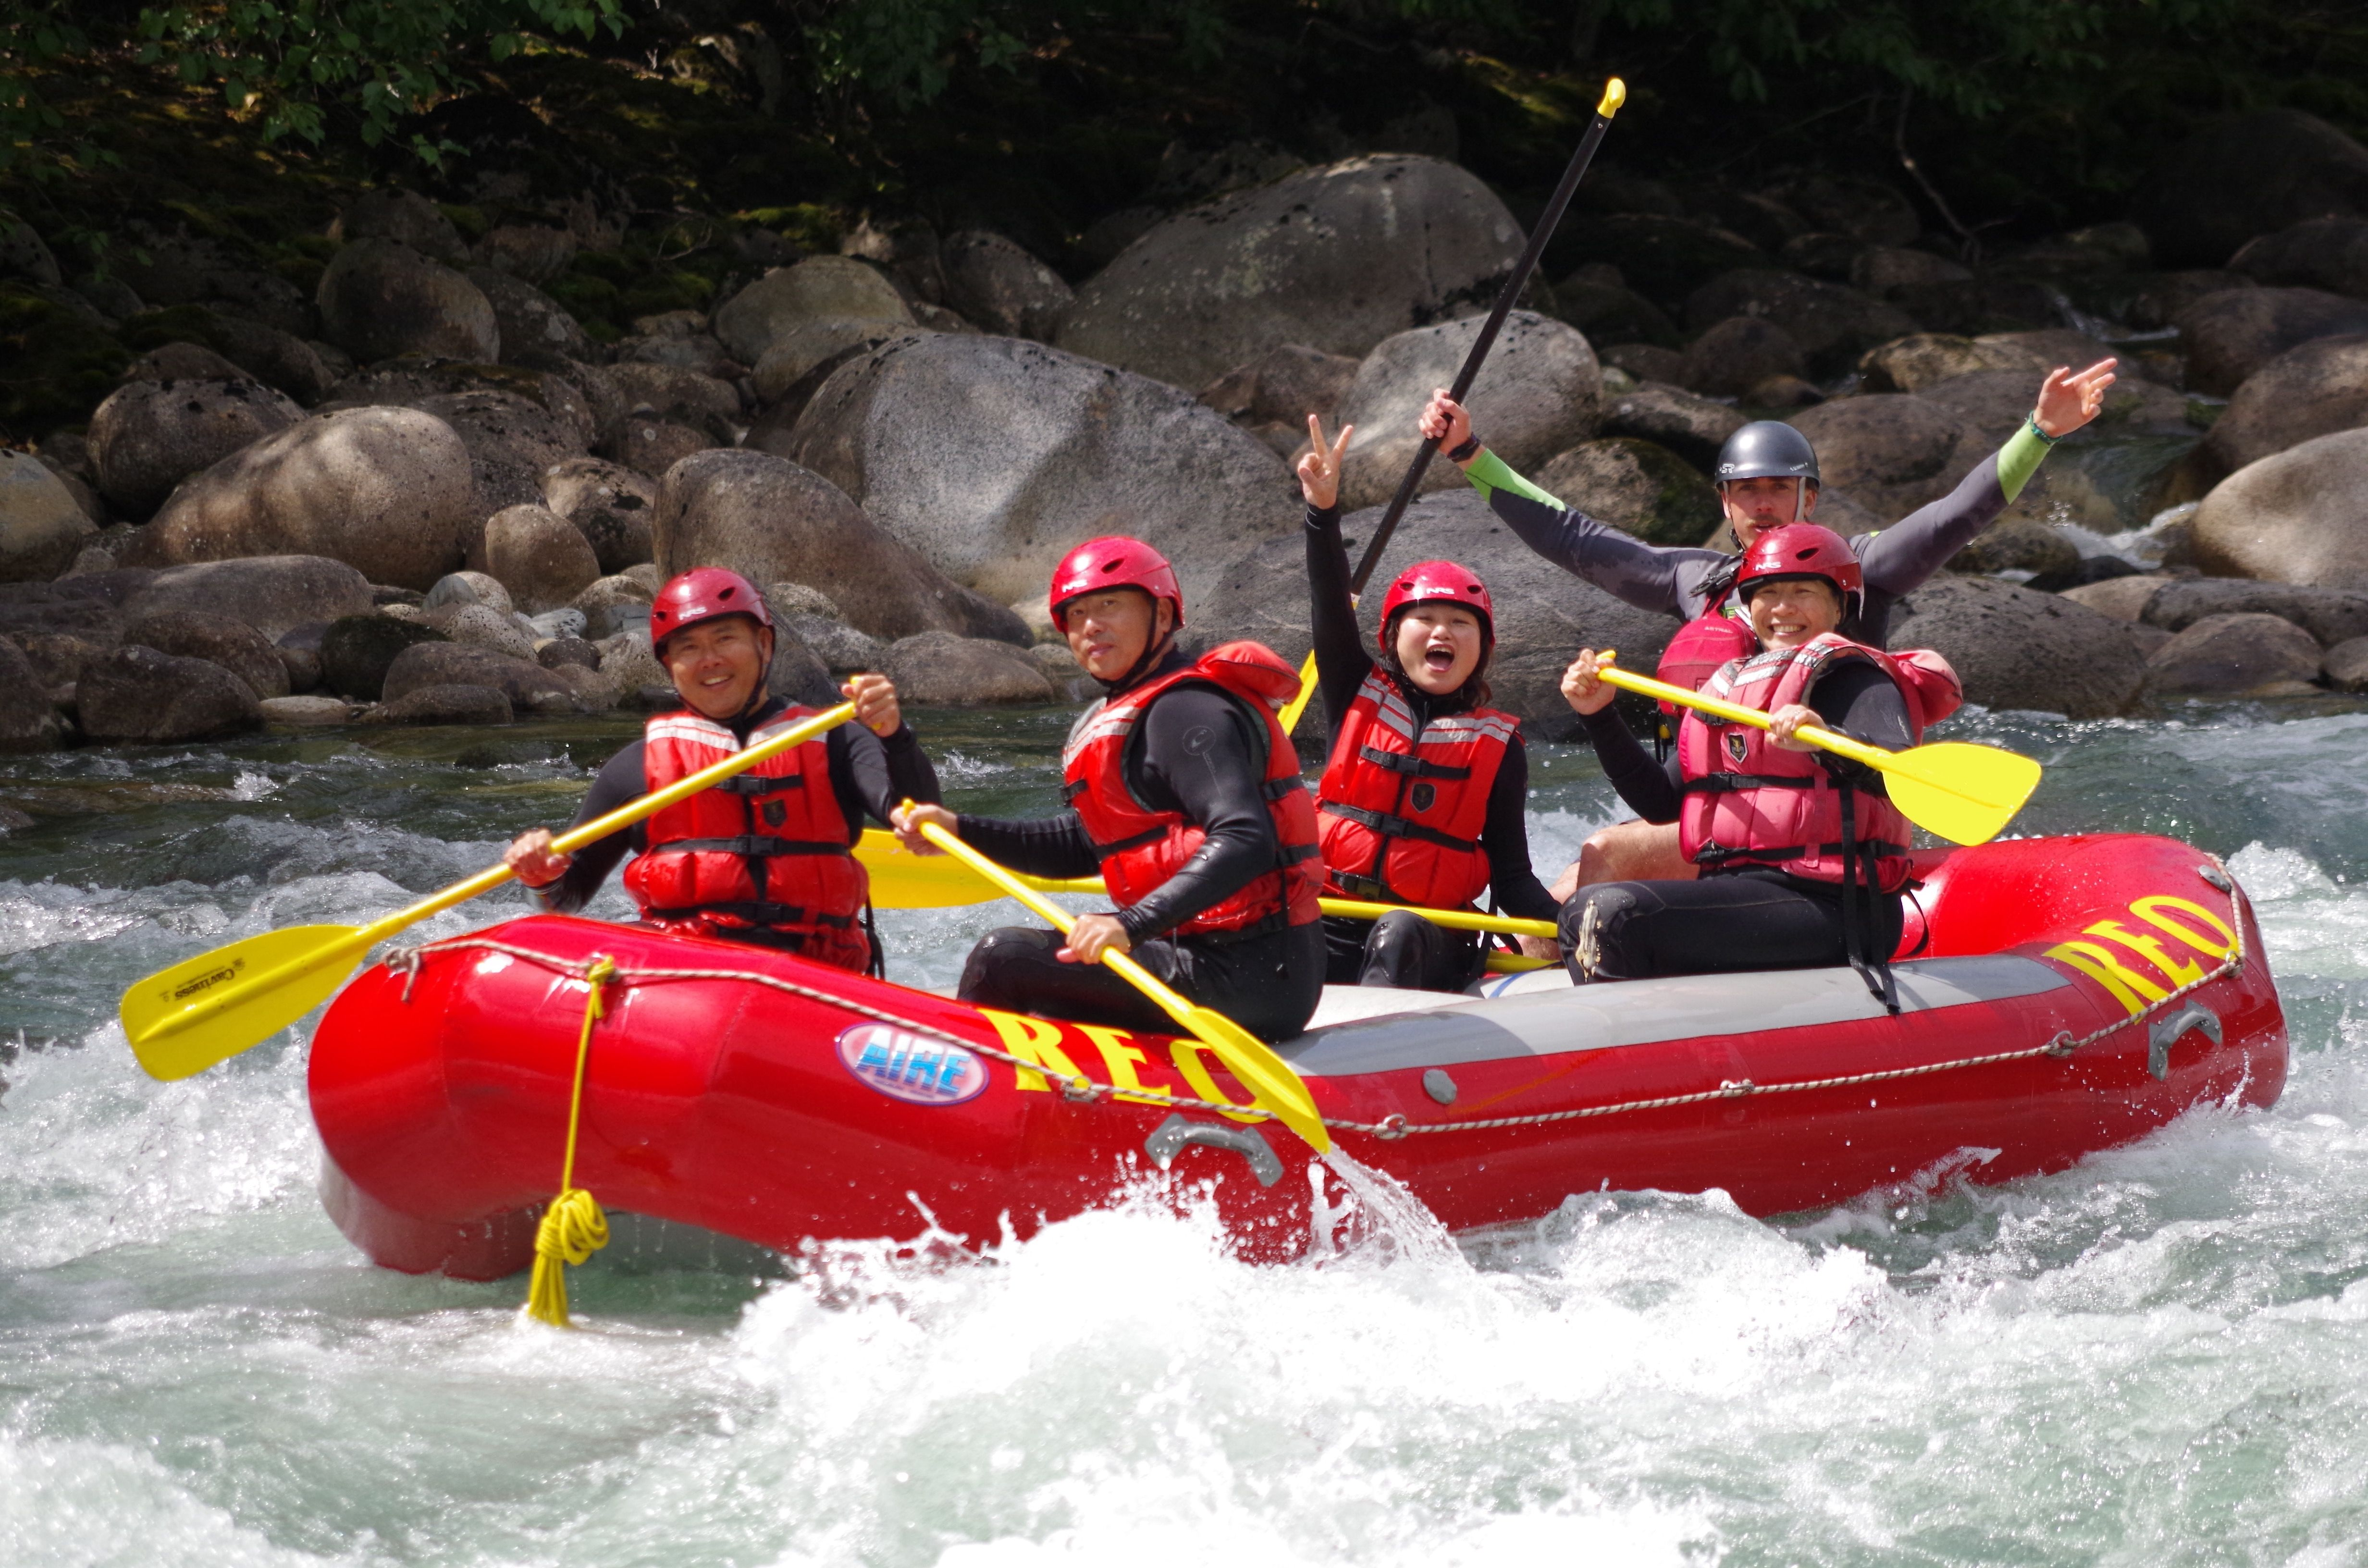 To Friends on the river. Making it the best adventure together.  #whitewaterrafting #rafting #friends #paddle #photography #actionshot #reorafting